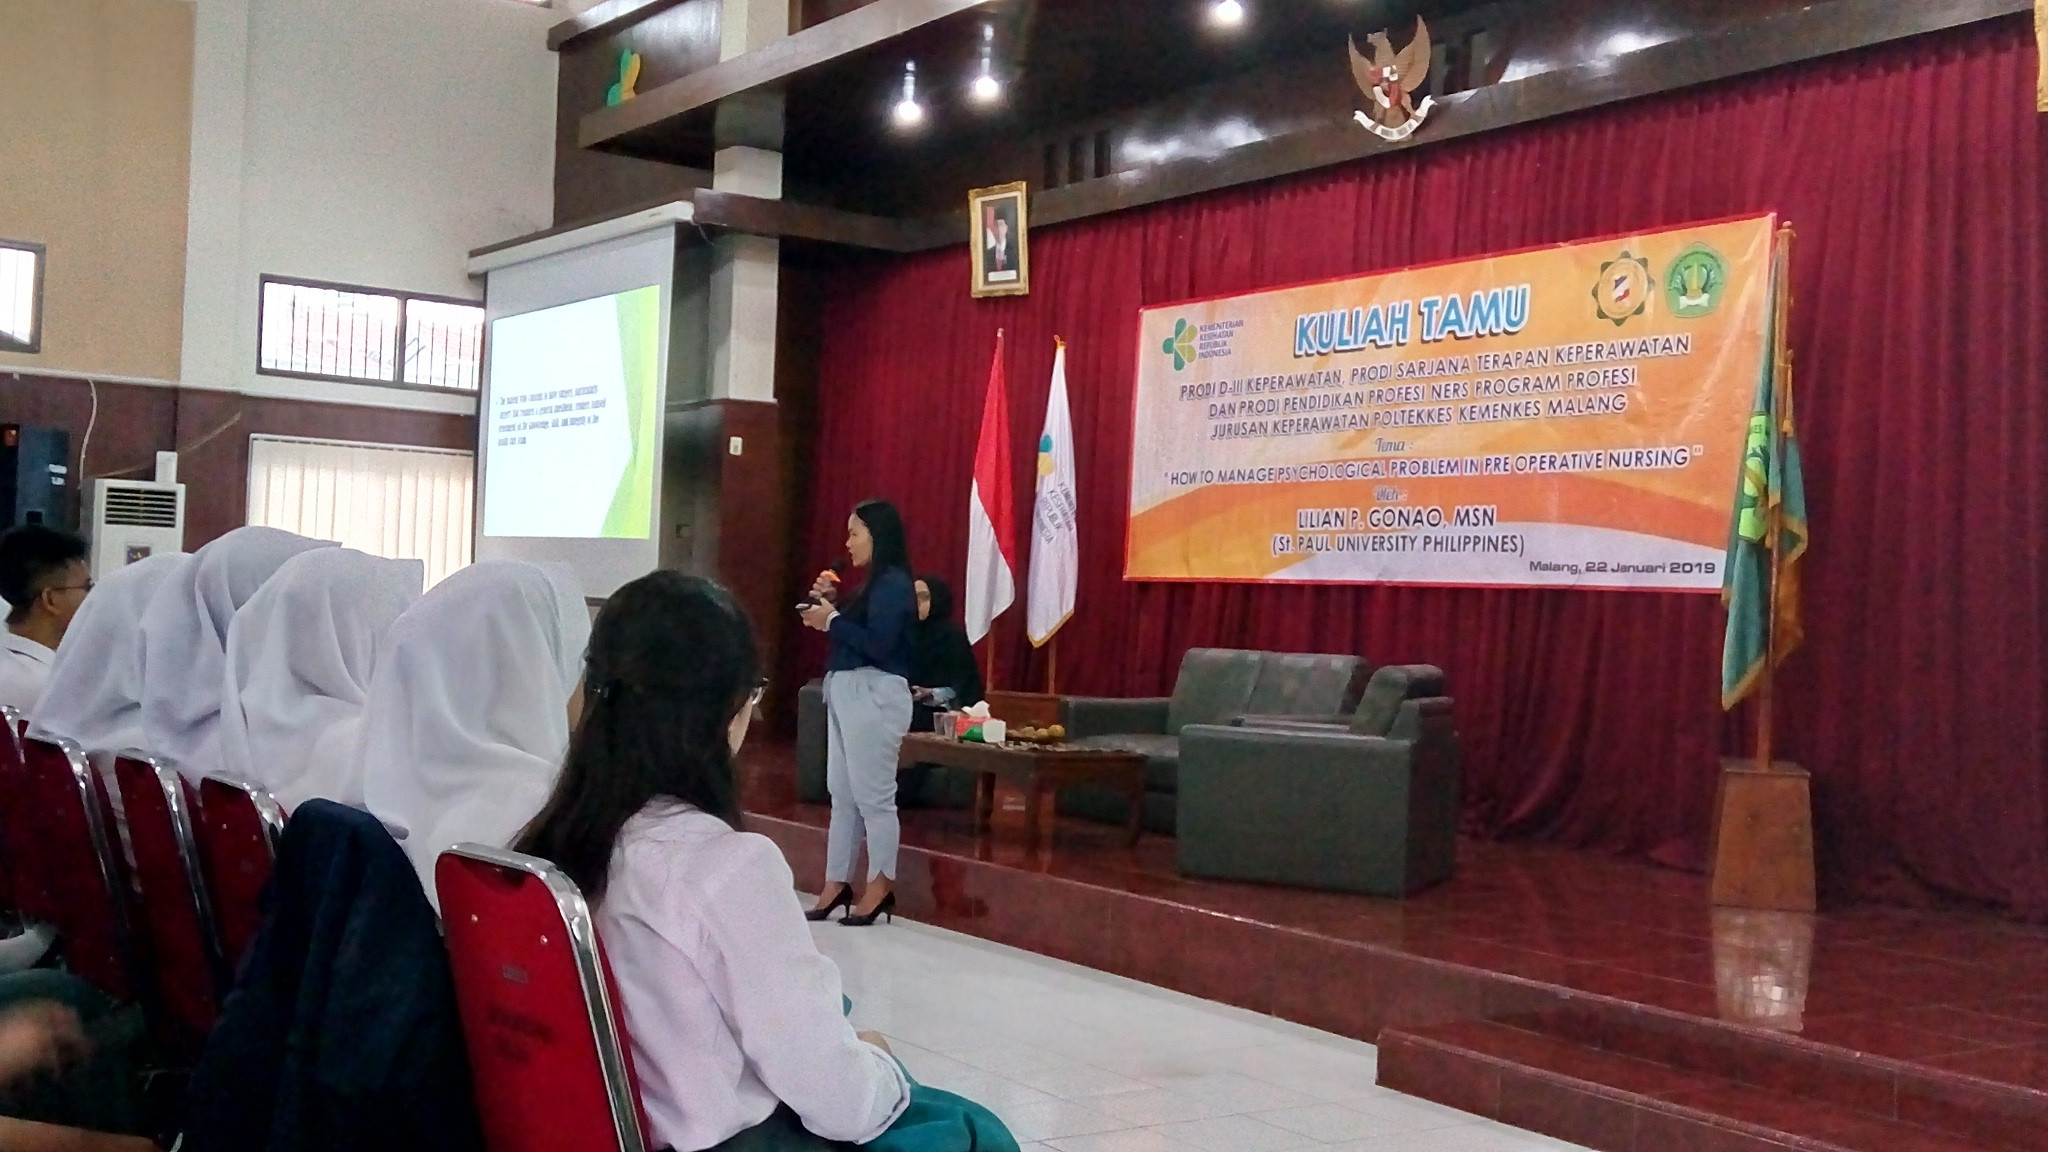 How to Manage Psicological Problem In Pre Opreative Nursing dengan narasumber Lilian P Gonao, MSN da